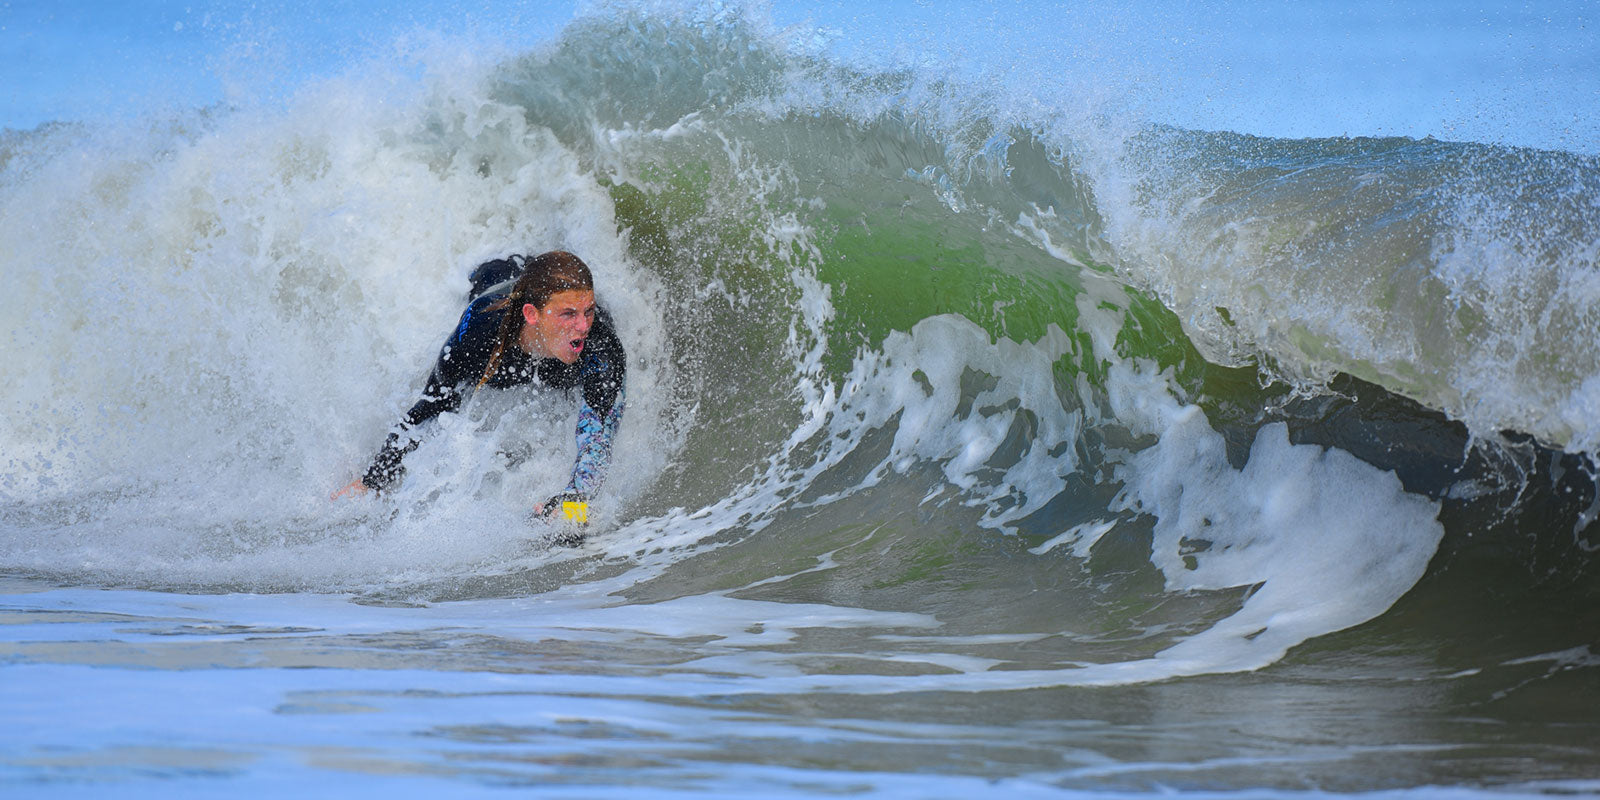 A Brief history to the sport of bodysurfing